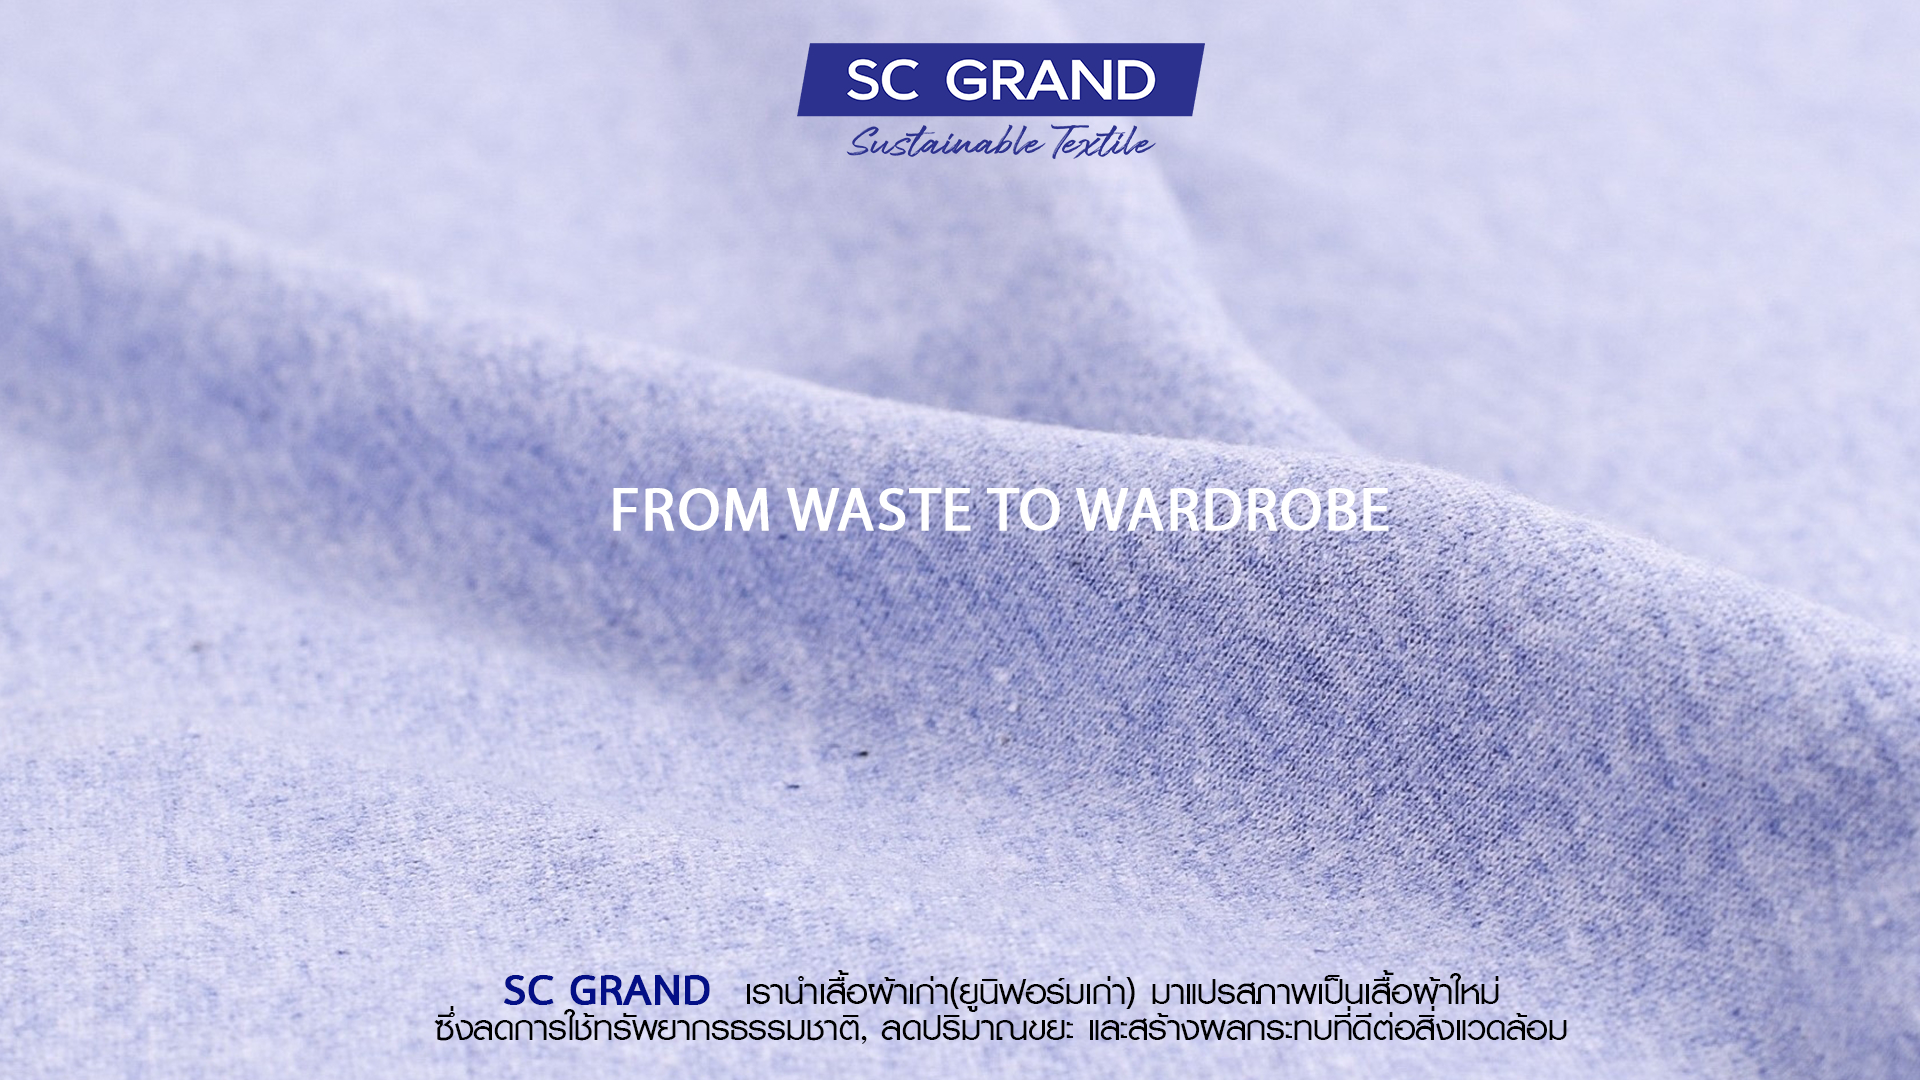 SC Grand 100% Recycled Textile